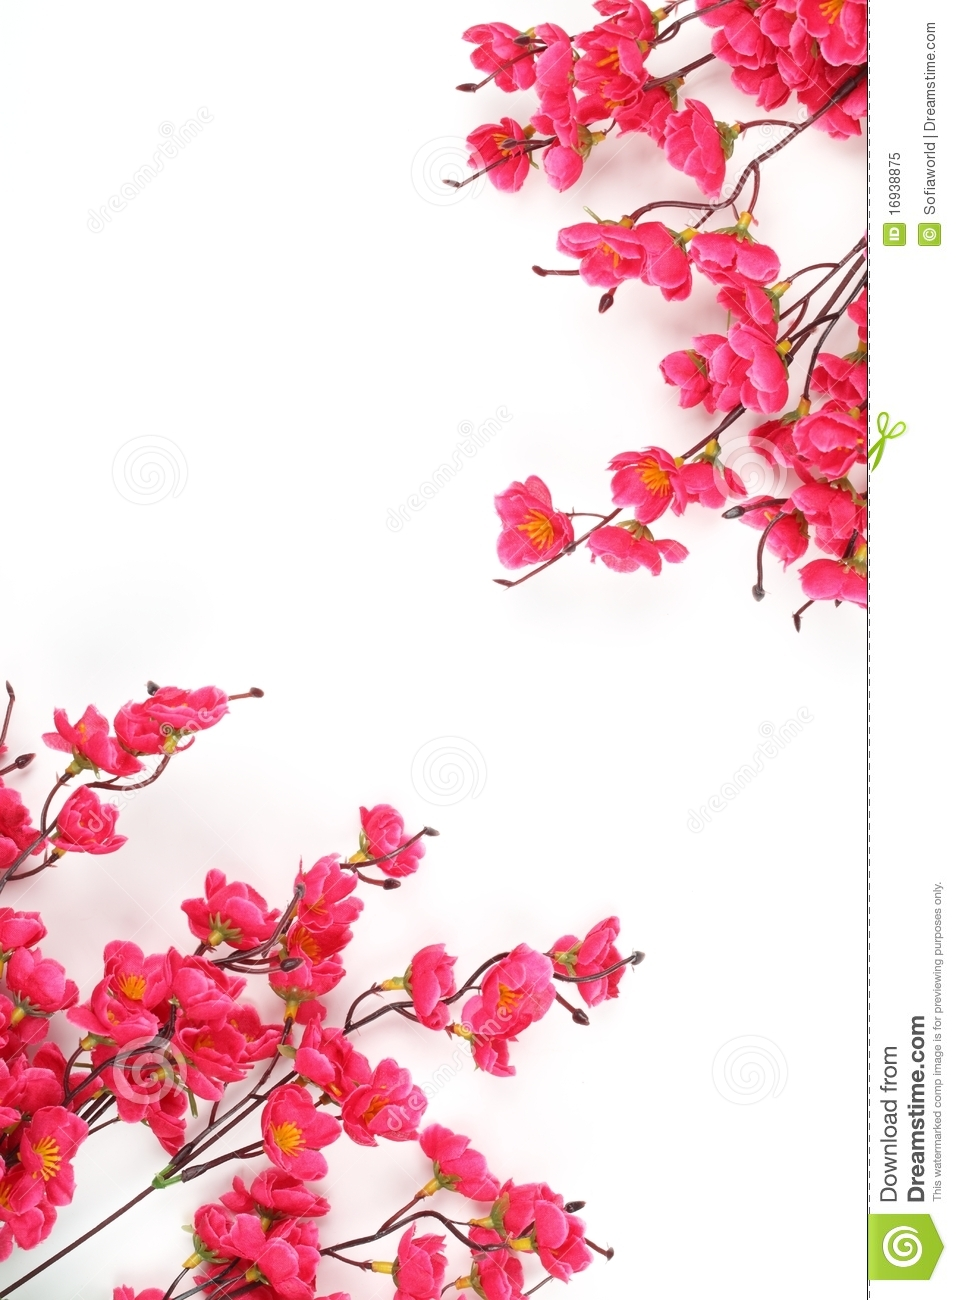 Royalty Free Stock Photo Chinese New Year Decoration Image16938875 further Green border further Royalty Free Stock Image Set Business Cards Different Topics Image26716726 moreover Design 20clipart 20tag besides Standing Hanging Hand Painted Art Nouveau Butterfly Mirror Victorian. on deco frame design